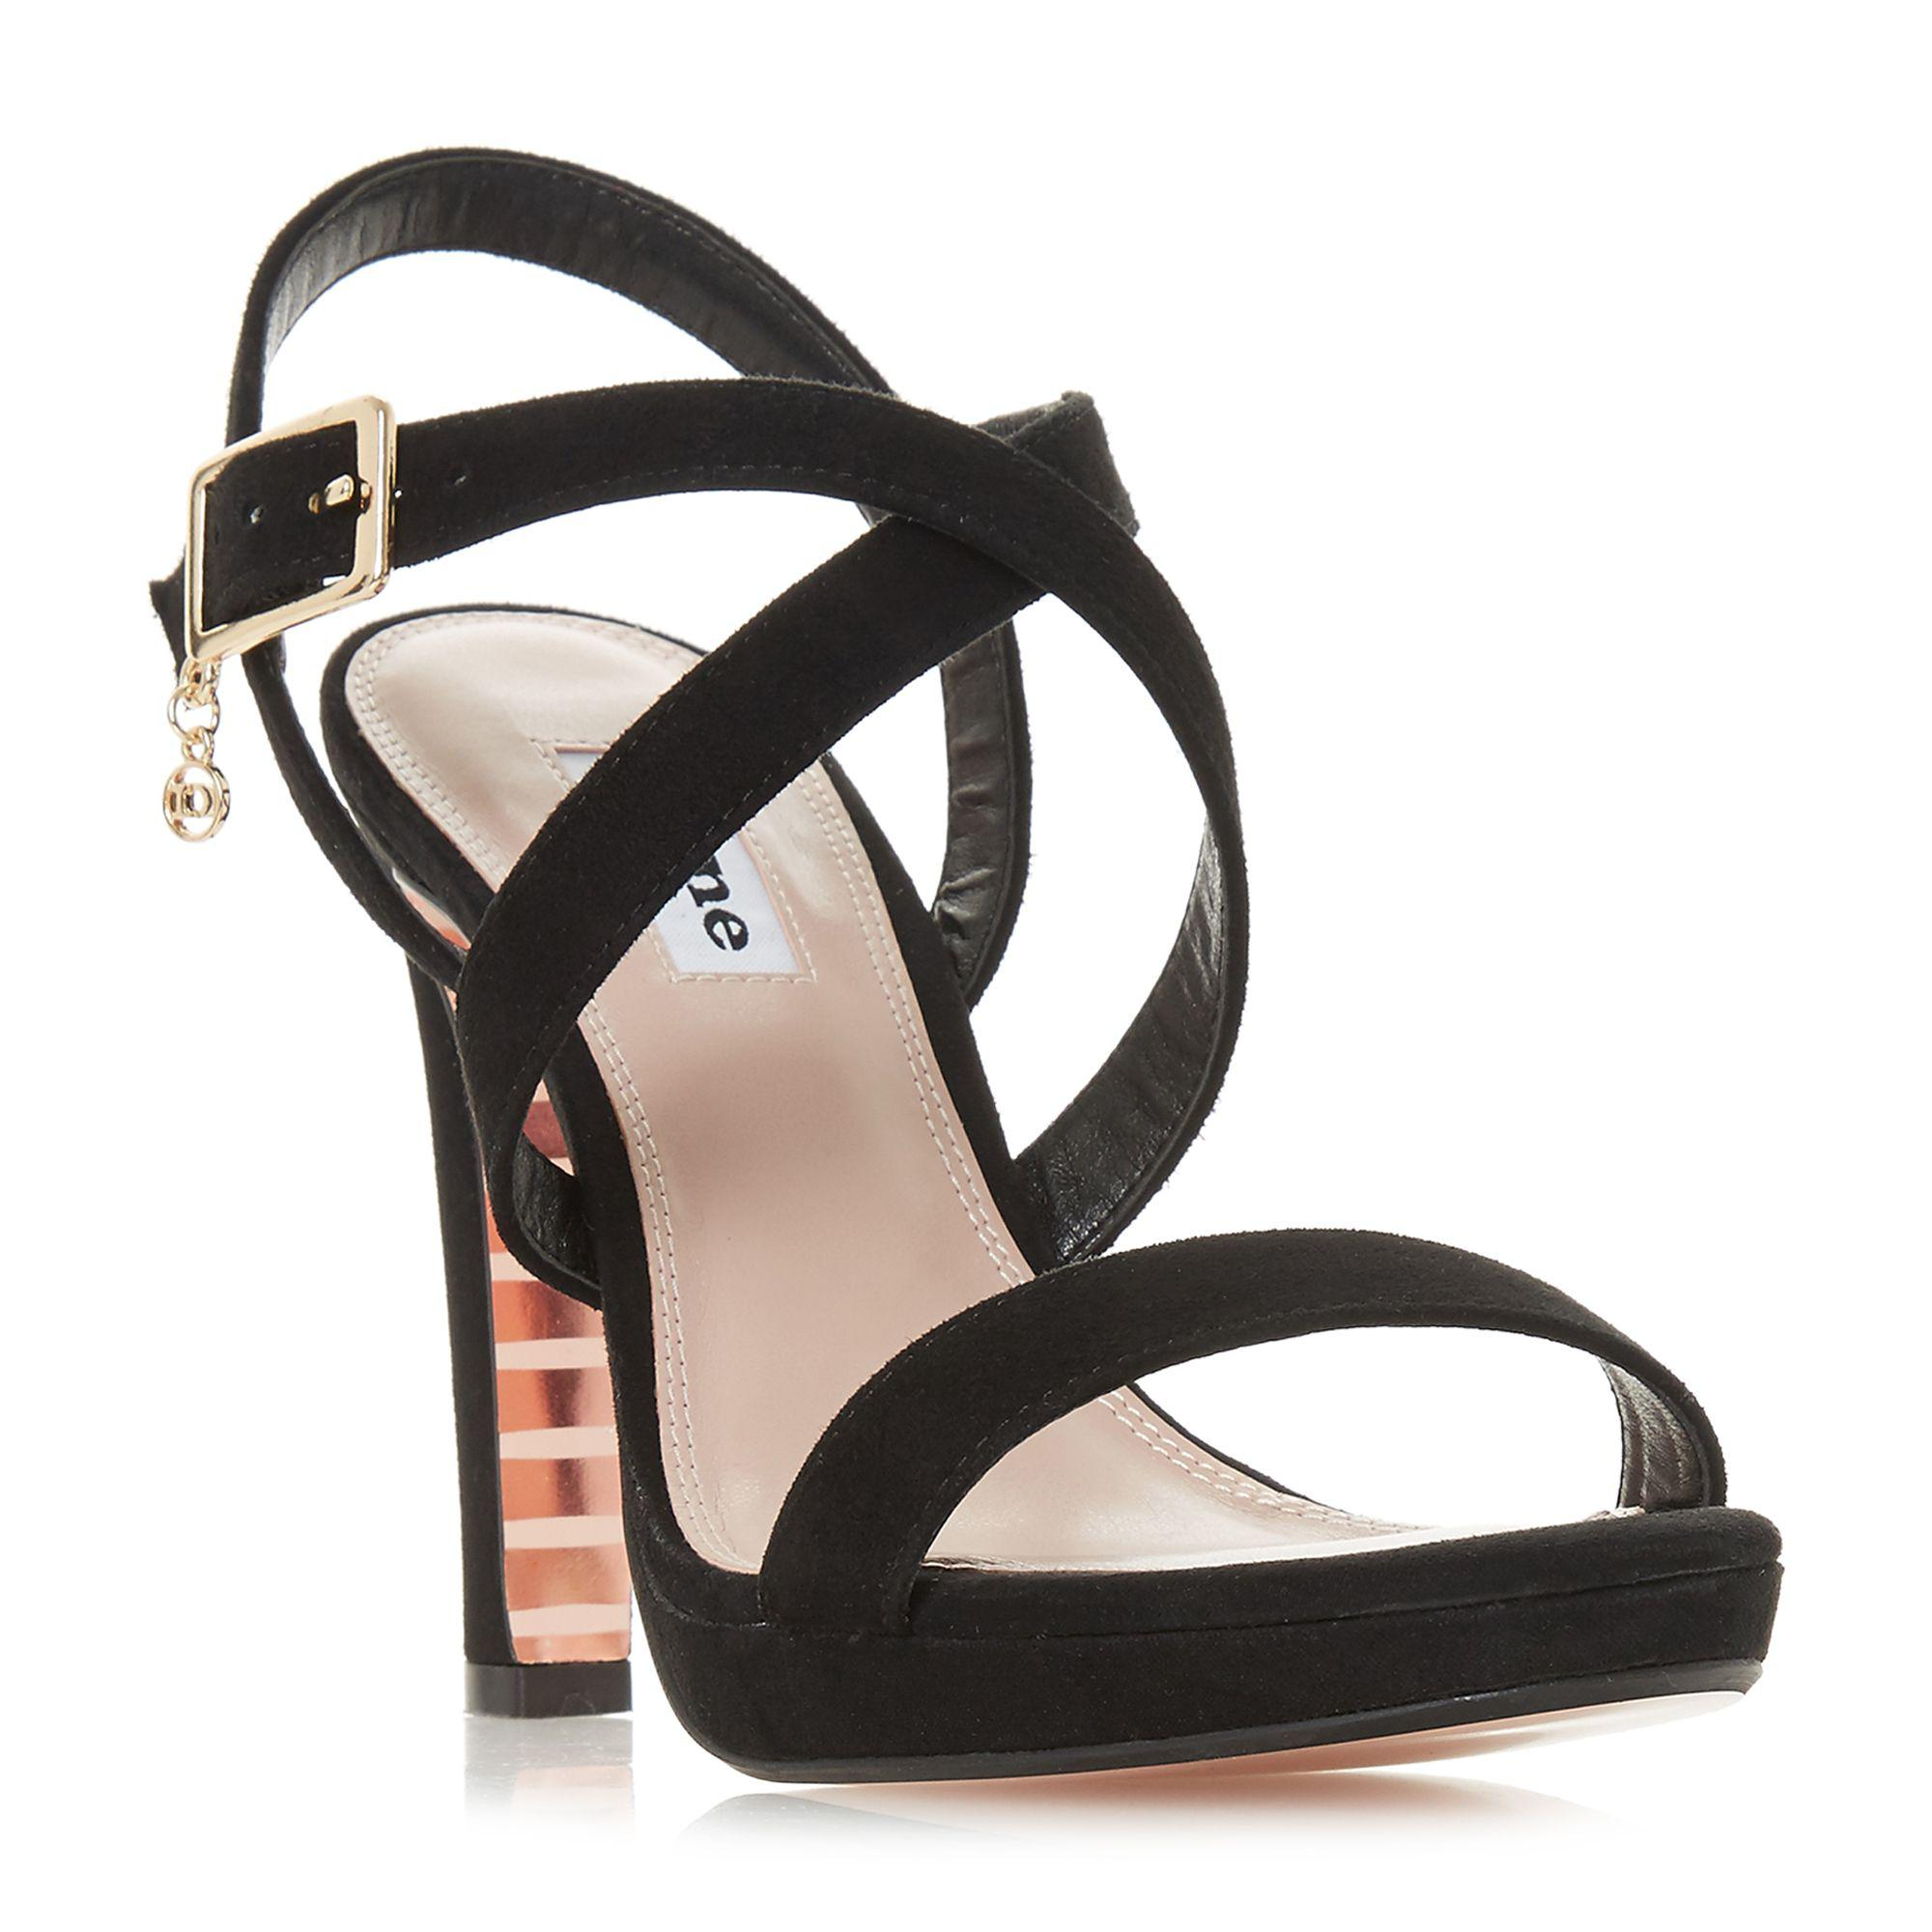 sale 100% authentic Gold 'Misstee' high stiletto heel ankle strap sandals cheap sale latest collections for sale cheap real explore cheap online svXOoXoU